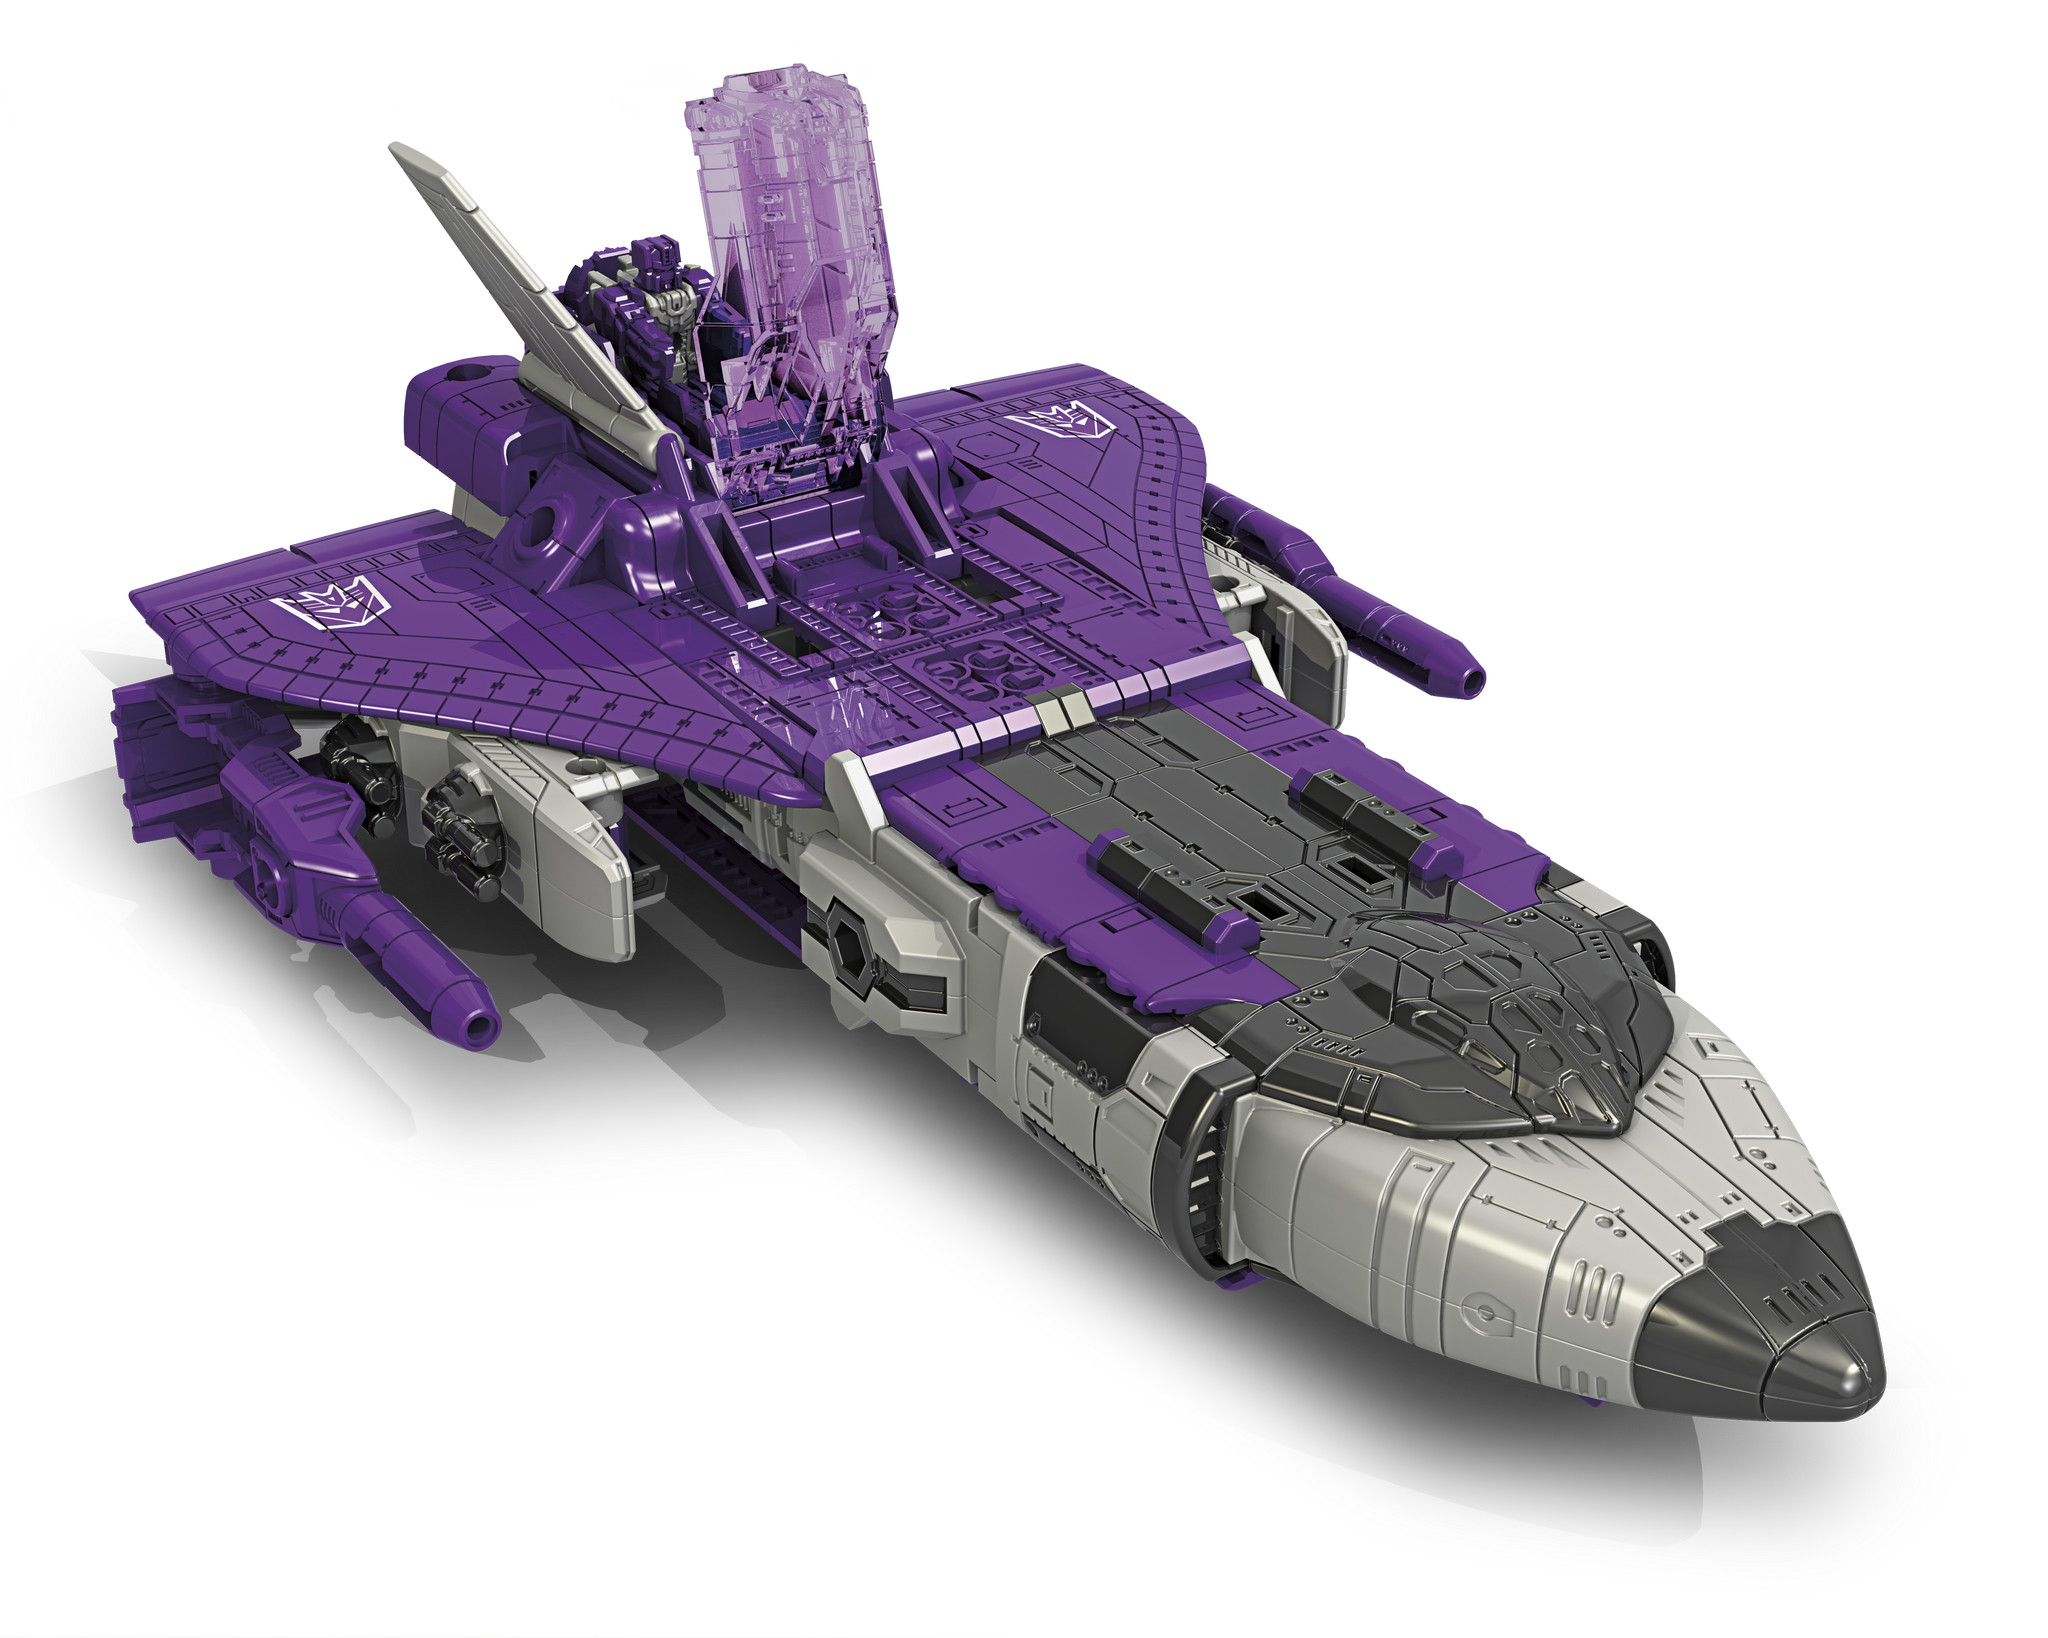 Astrotrain Spaceship Mode